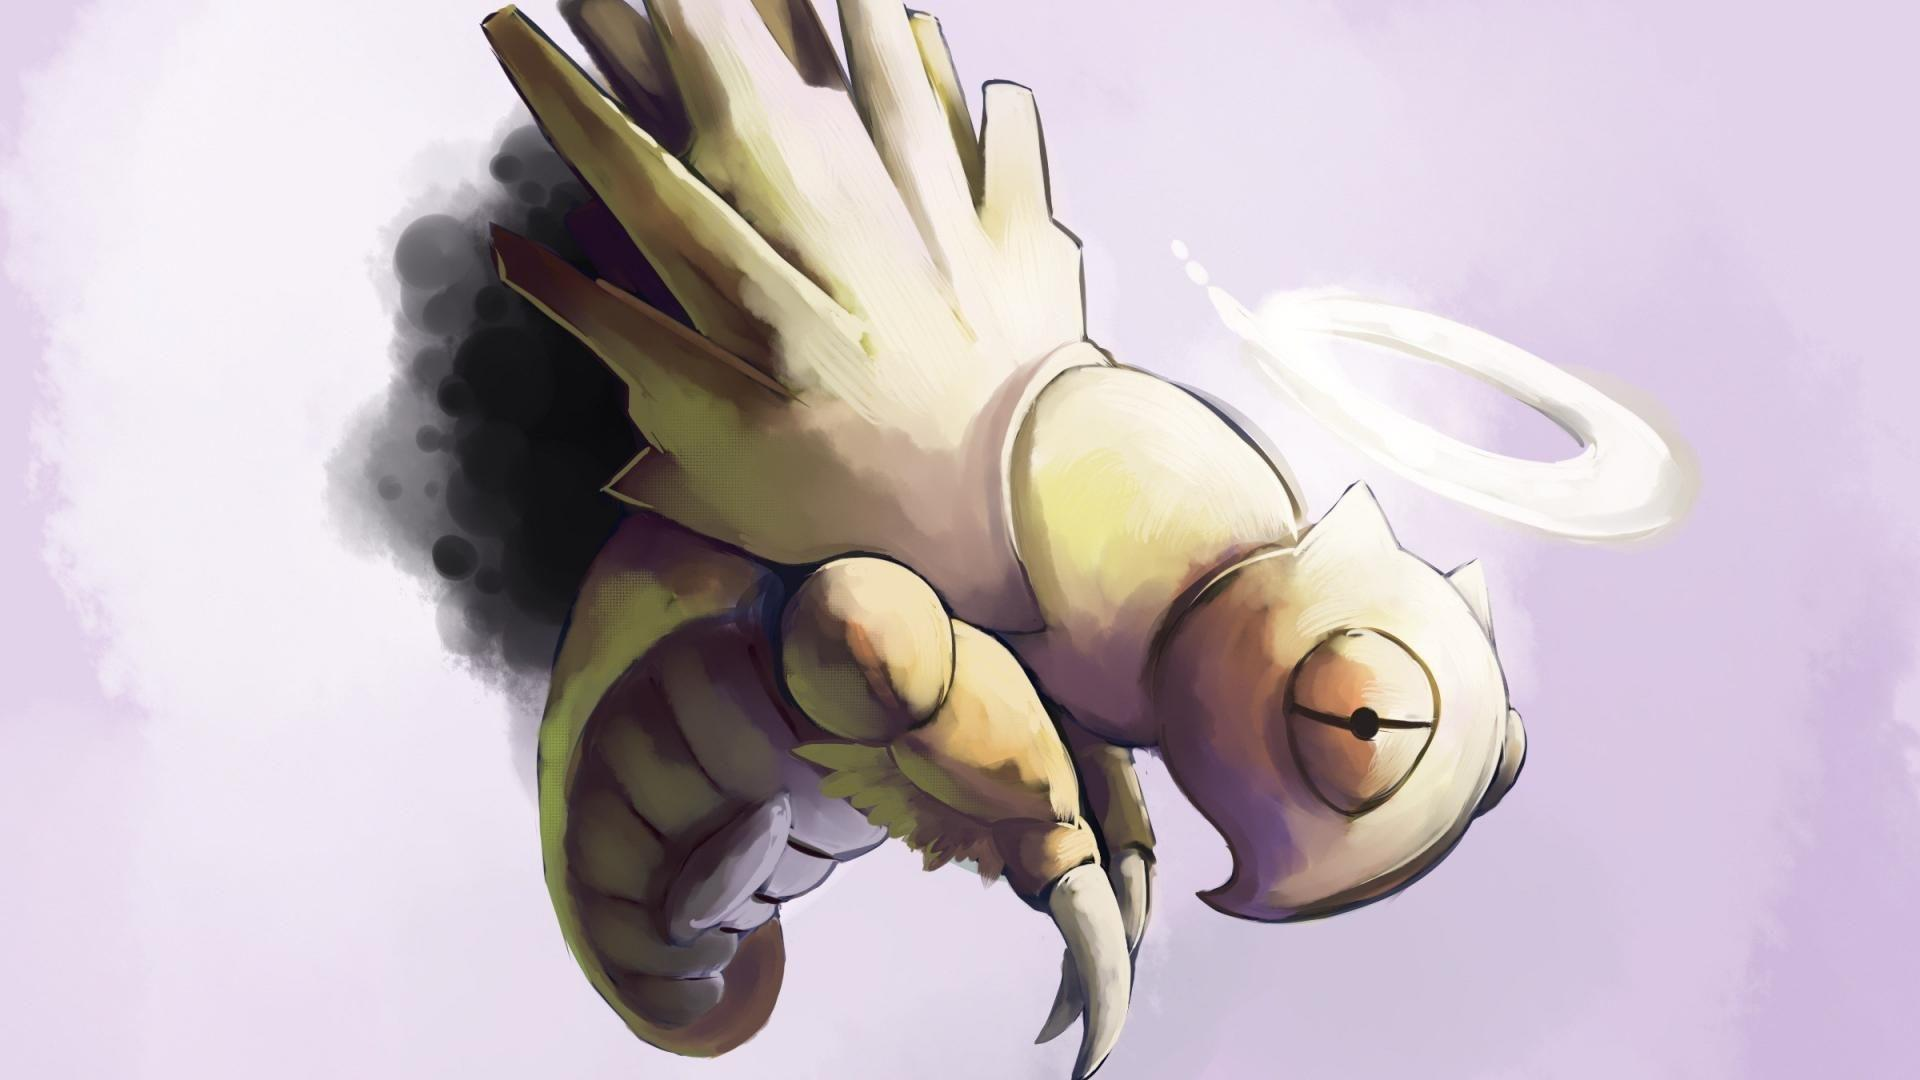 Creepy pokemon insects dead simple background grey shedinja ...